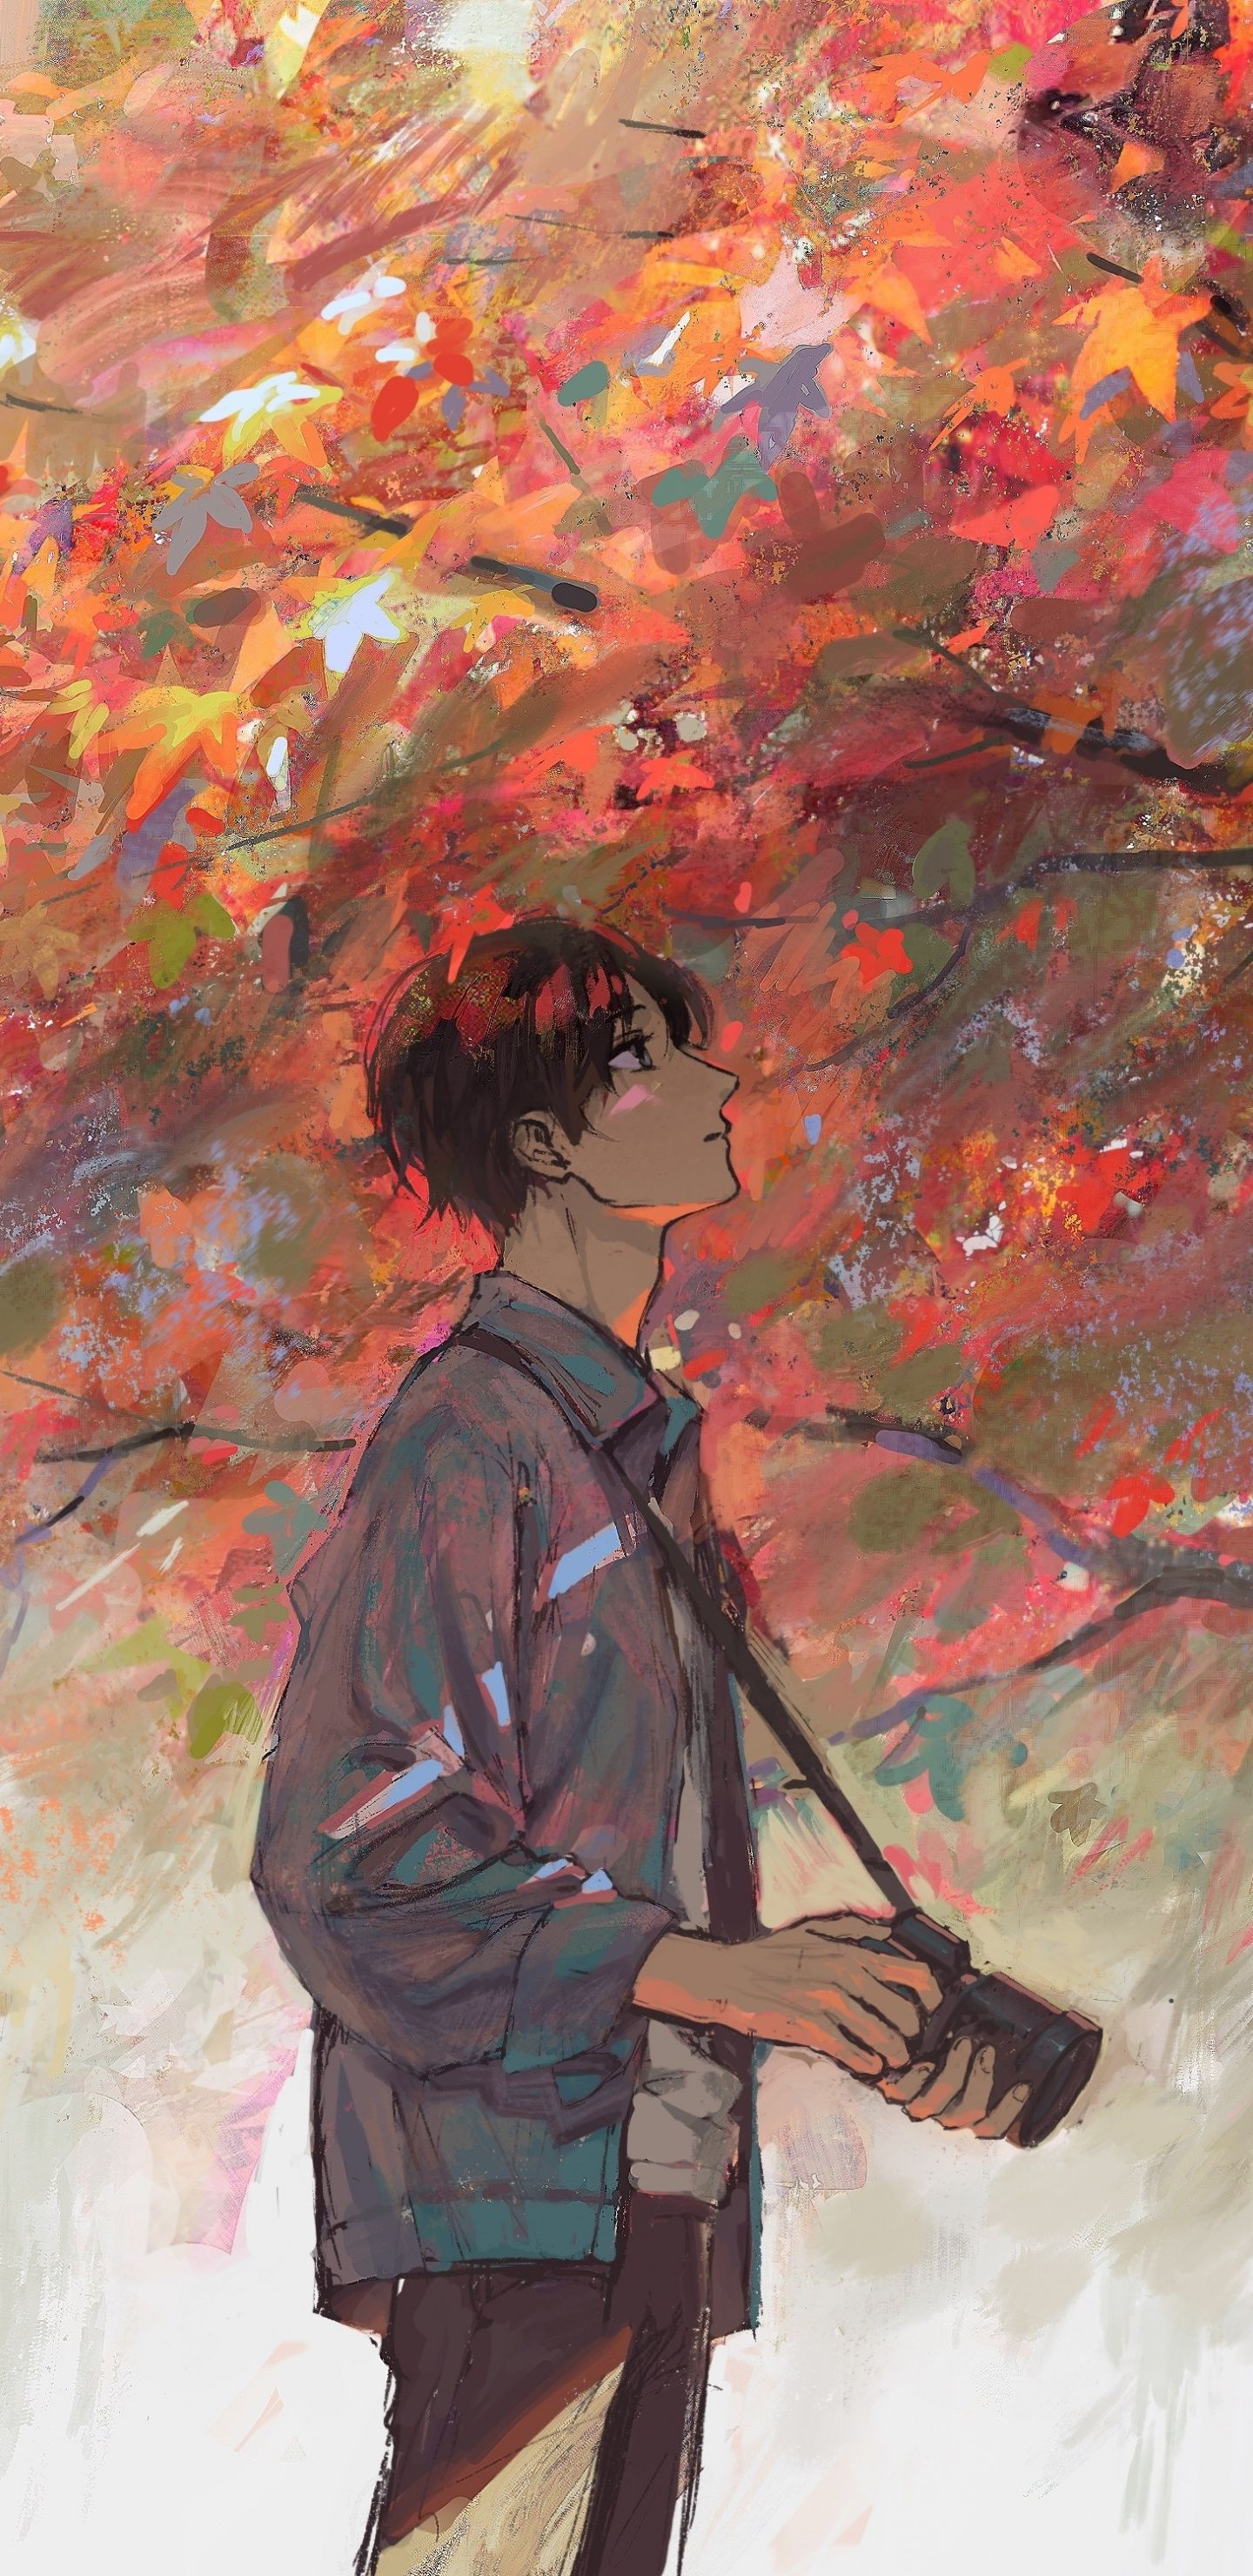 Anime Boy Autumn Tree Artwork 1440x2960 Wallpaper From Android App Anime Backgrounds Wallpapers Anime Artwork Wallpaper Anime Scenery